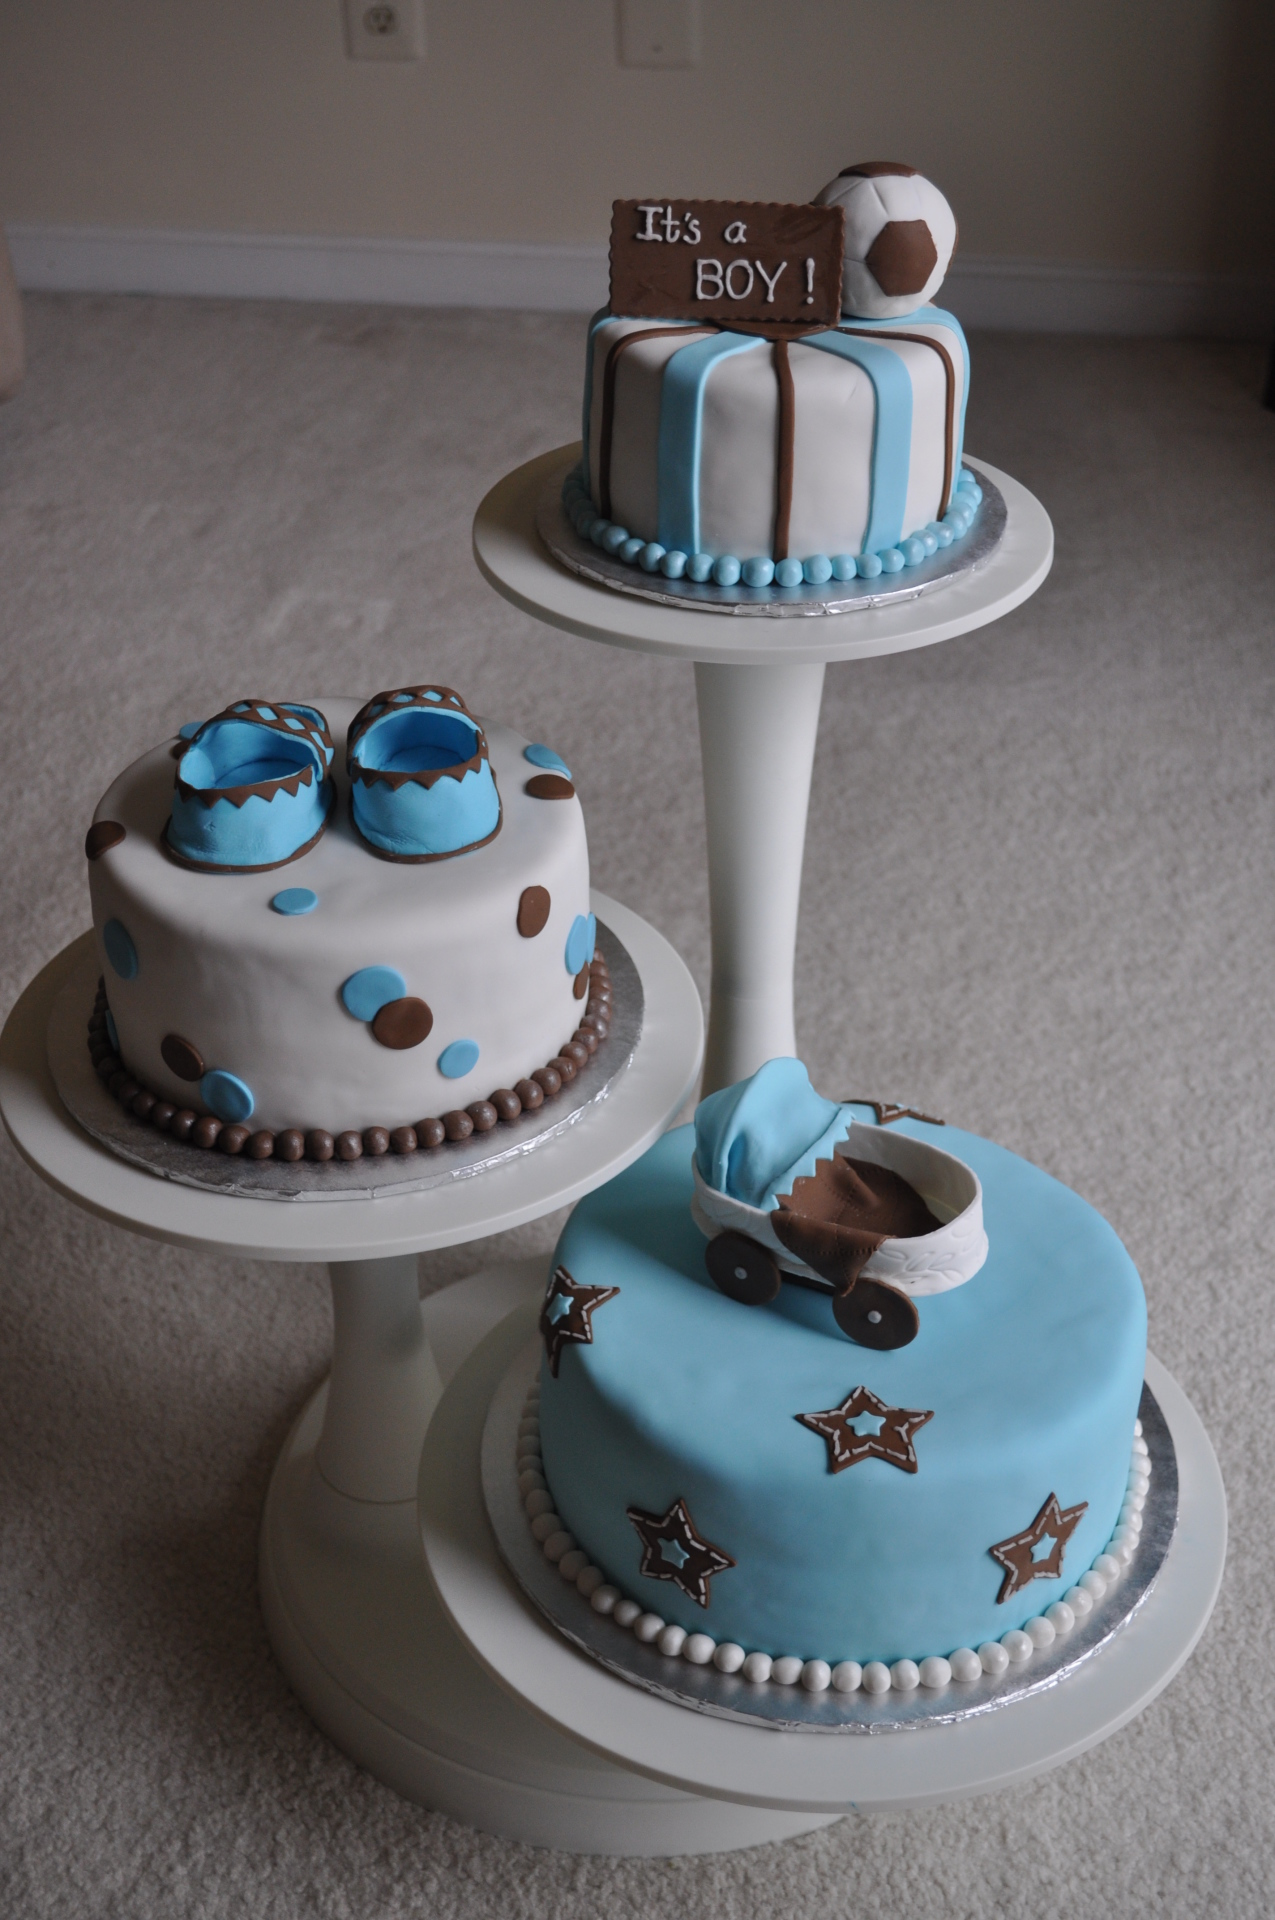 Blue and Brown seperate tiers with toppers